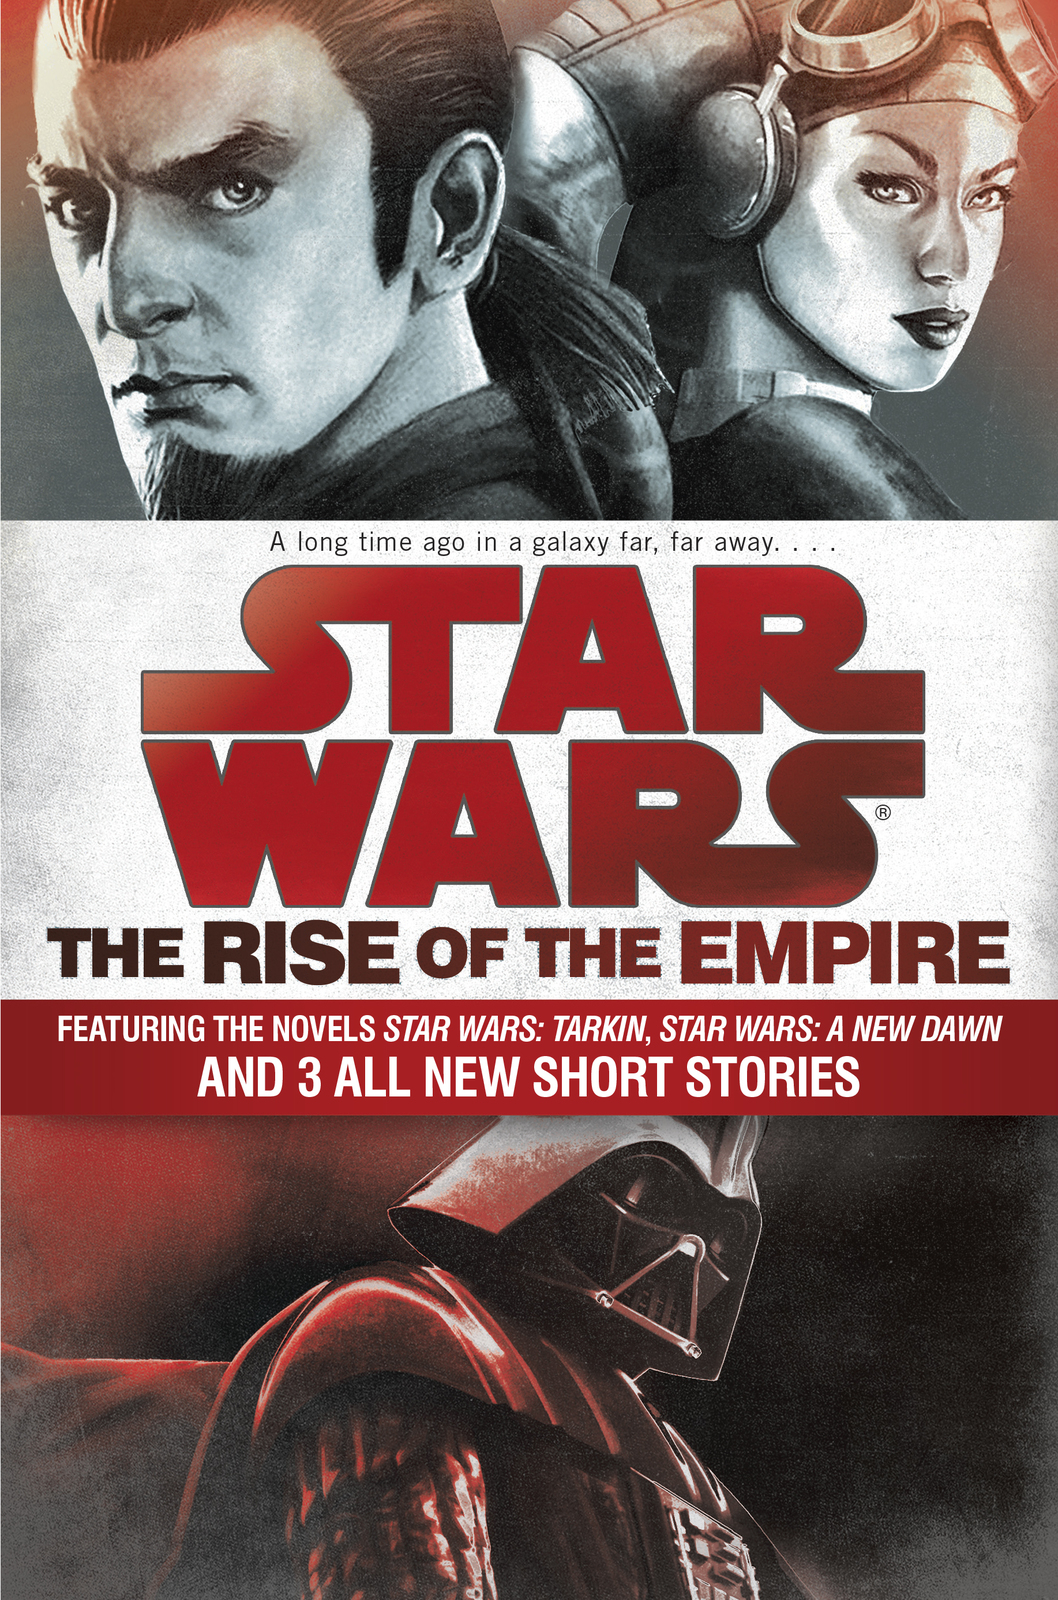 The Rise of the Empire: Star Wars by John Jackson Miller image